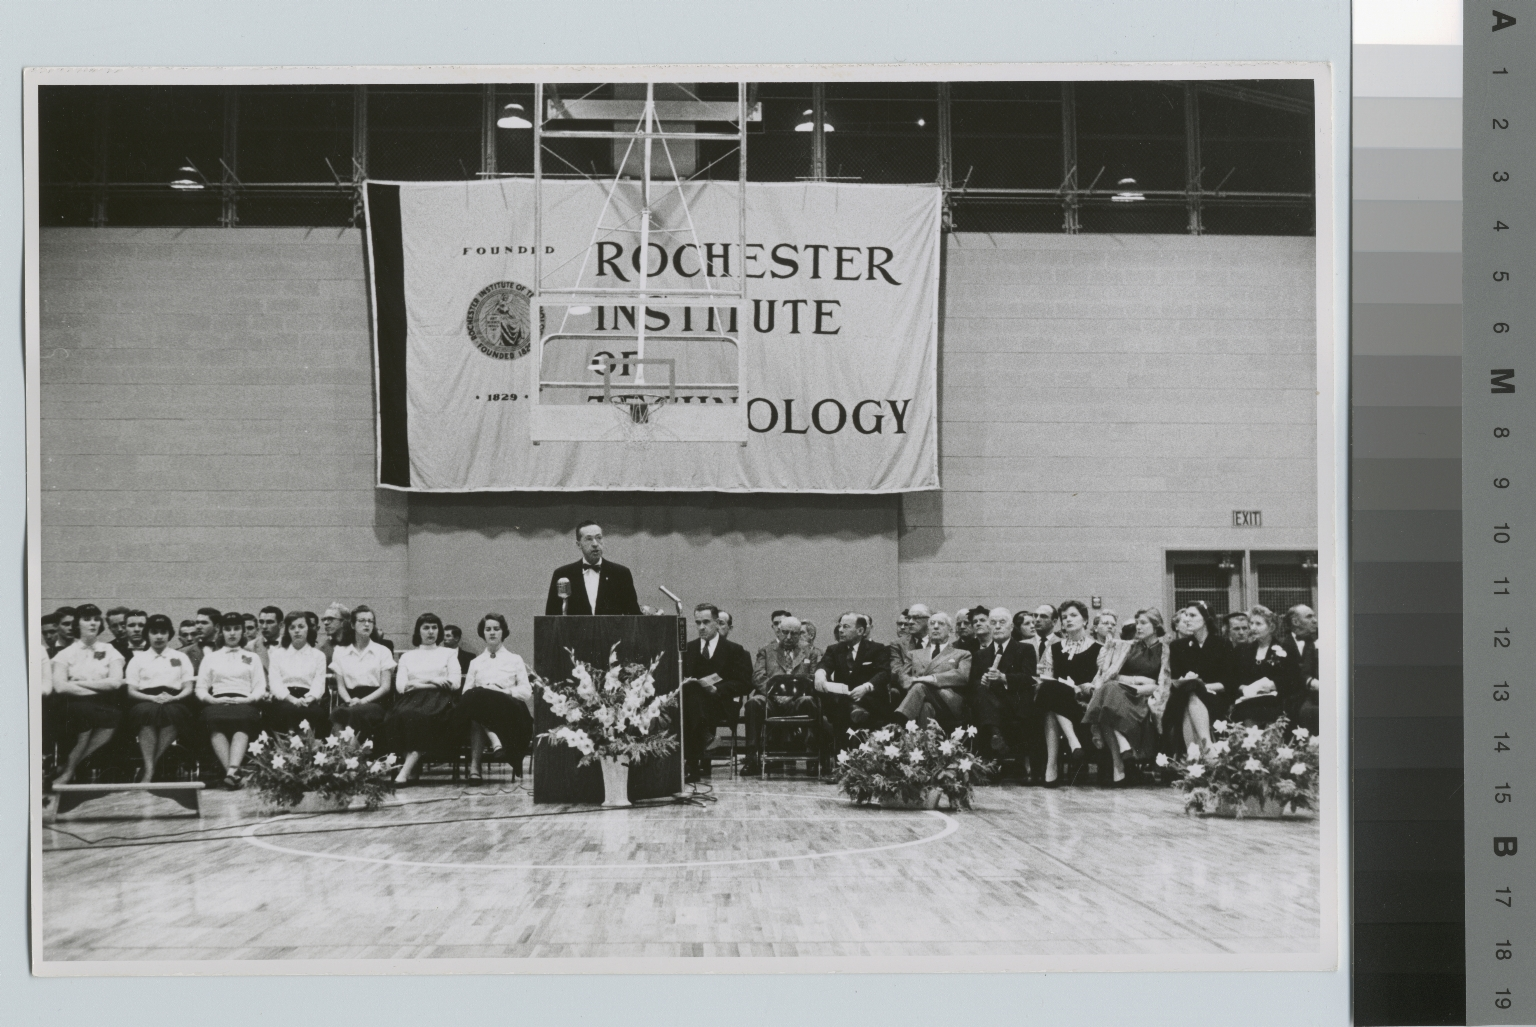 Dedication, Ritter-Clark Memorial Building and Ice Arena, Rochester Institute of Technology